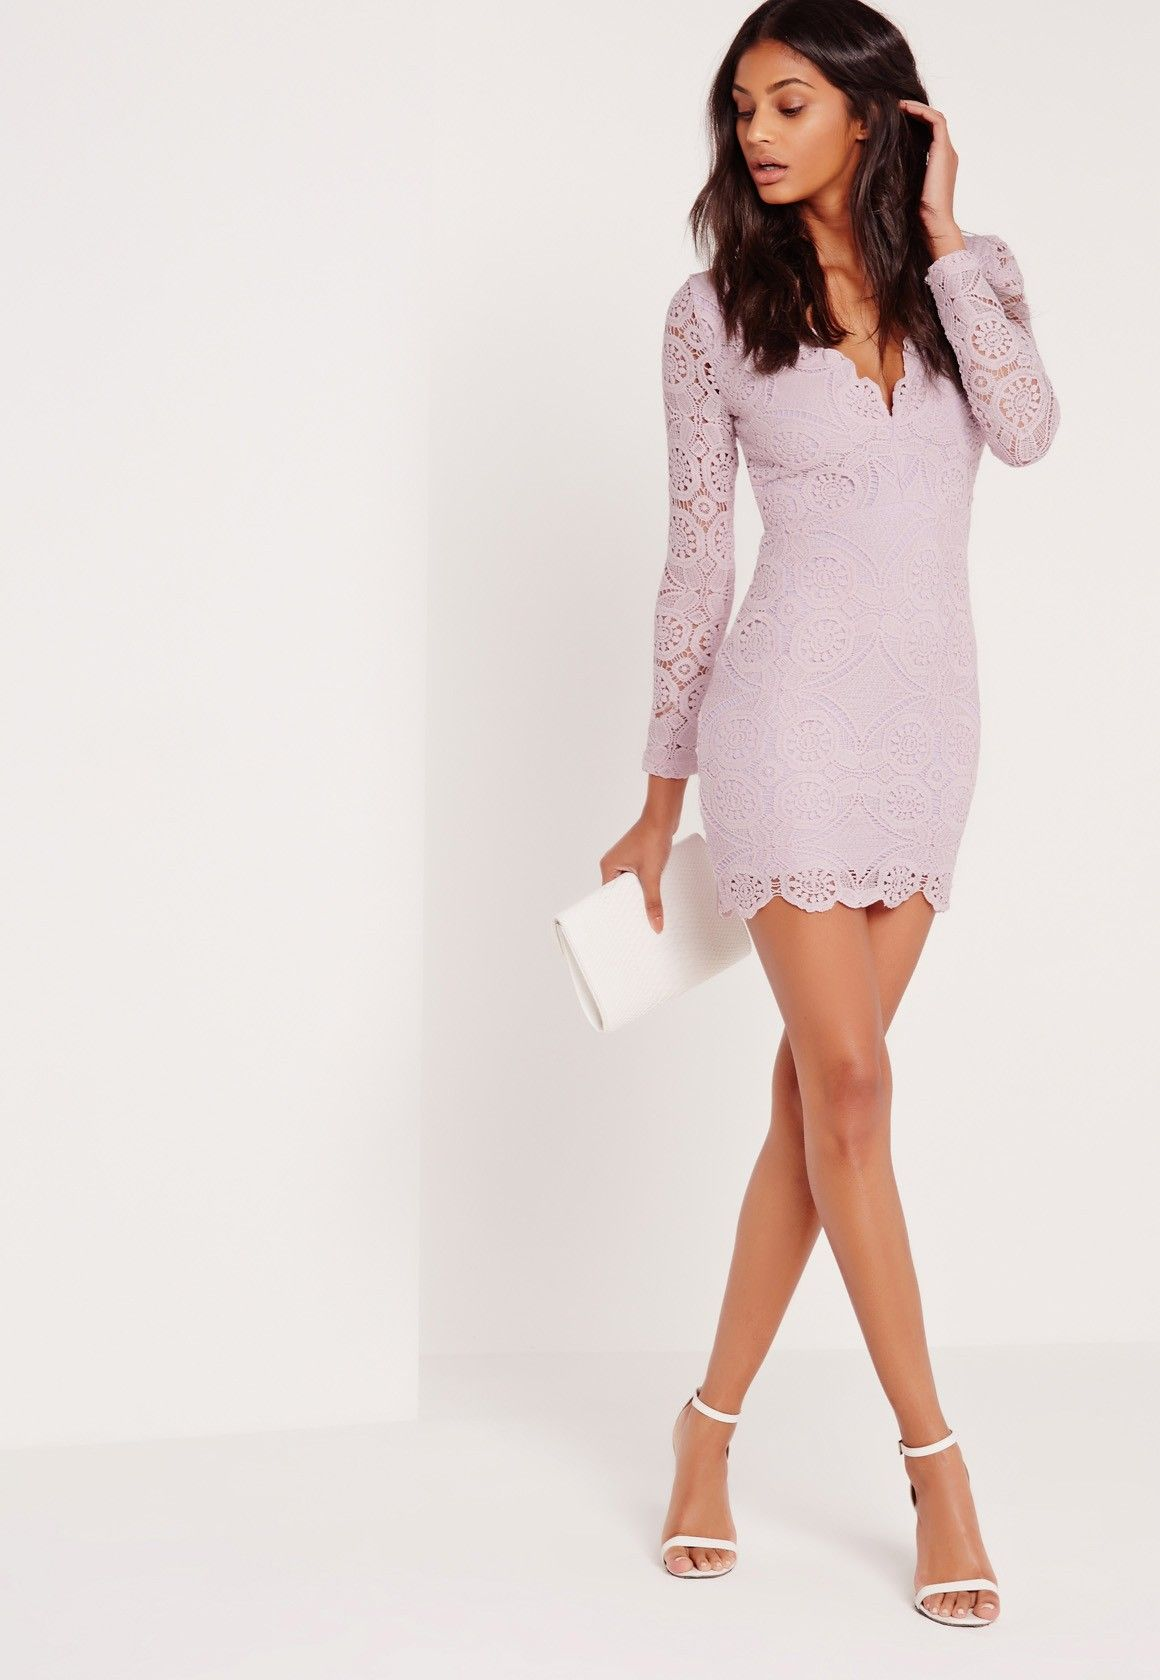 Missguided - Lace Long Sleeve Bodycon Dress Lilac  c63dda1a00d8